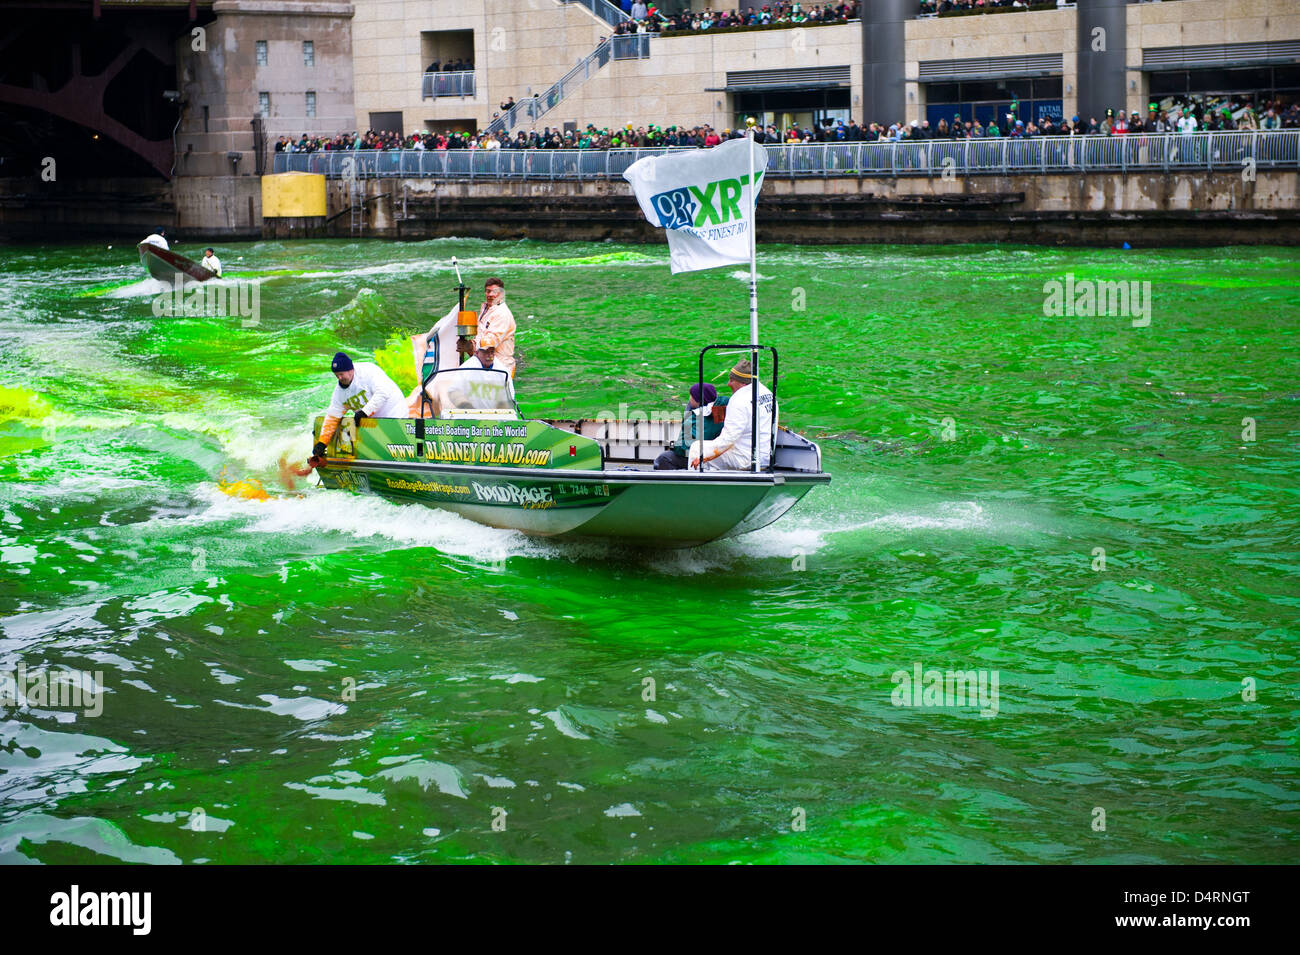 The Chicago River is dyed green for St. Patrick's Day in Chicago, U.S.A., on Saturday March 16, 2013. - Stock Image